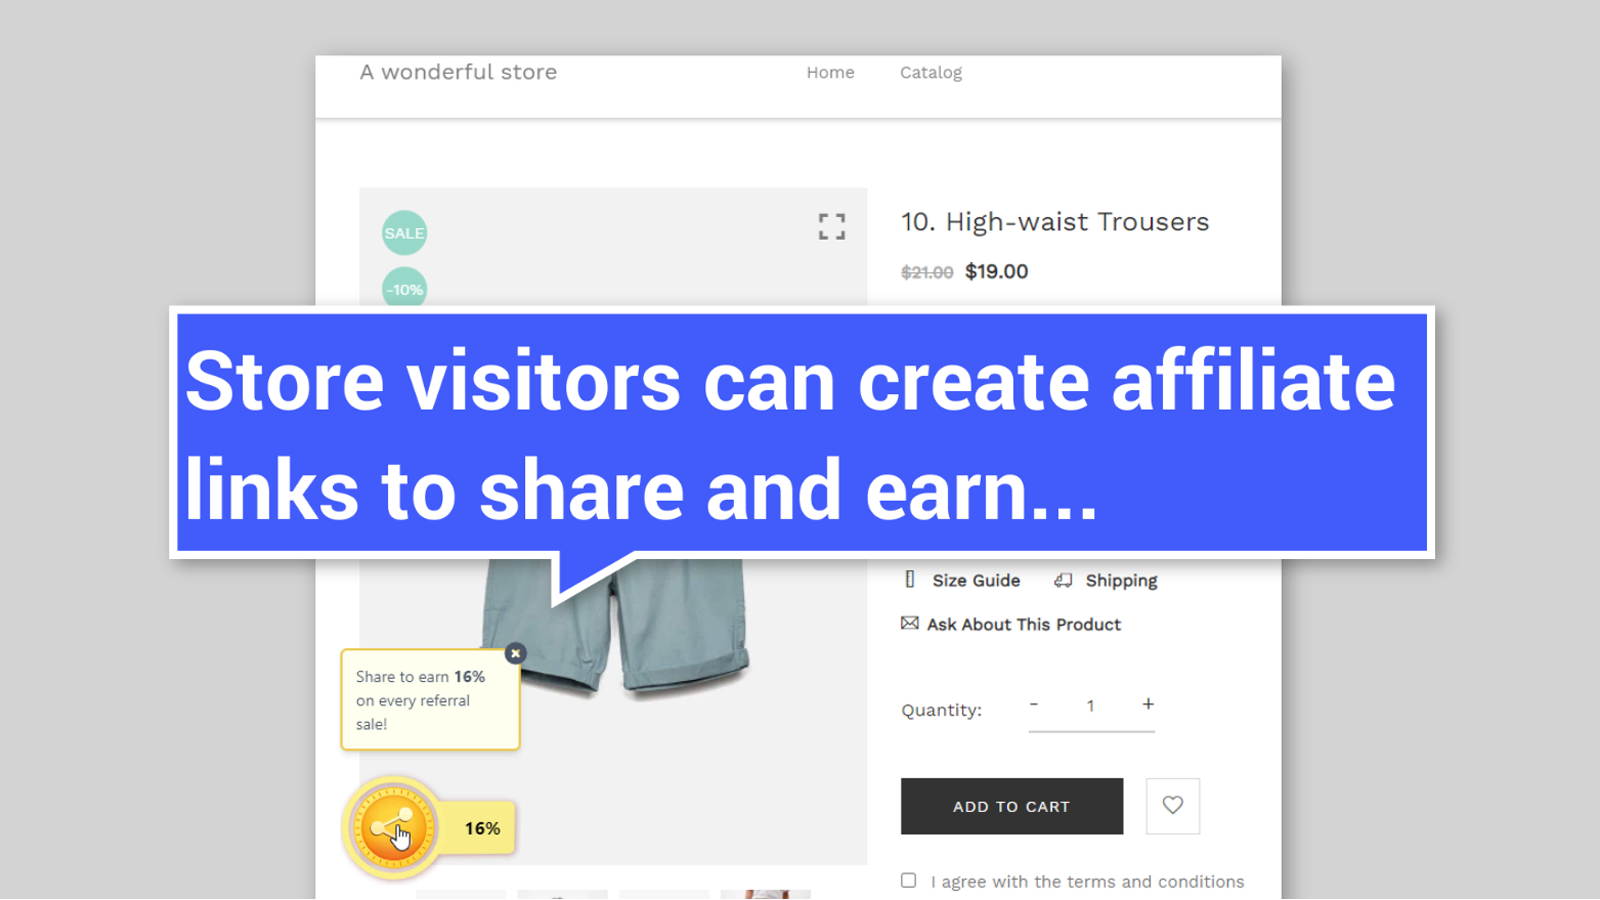 Store visitors can create affiliate links to share and earn...